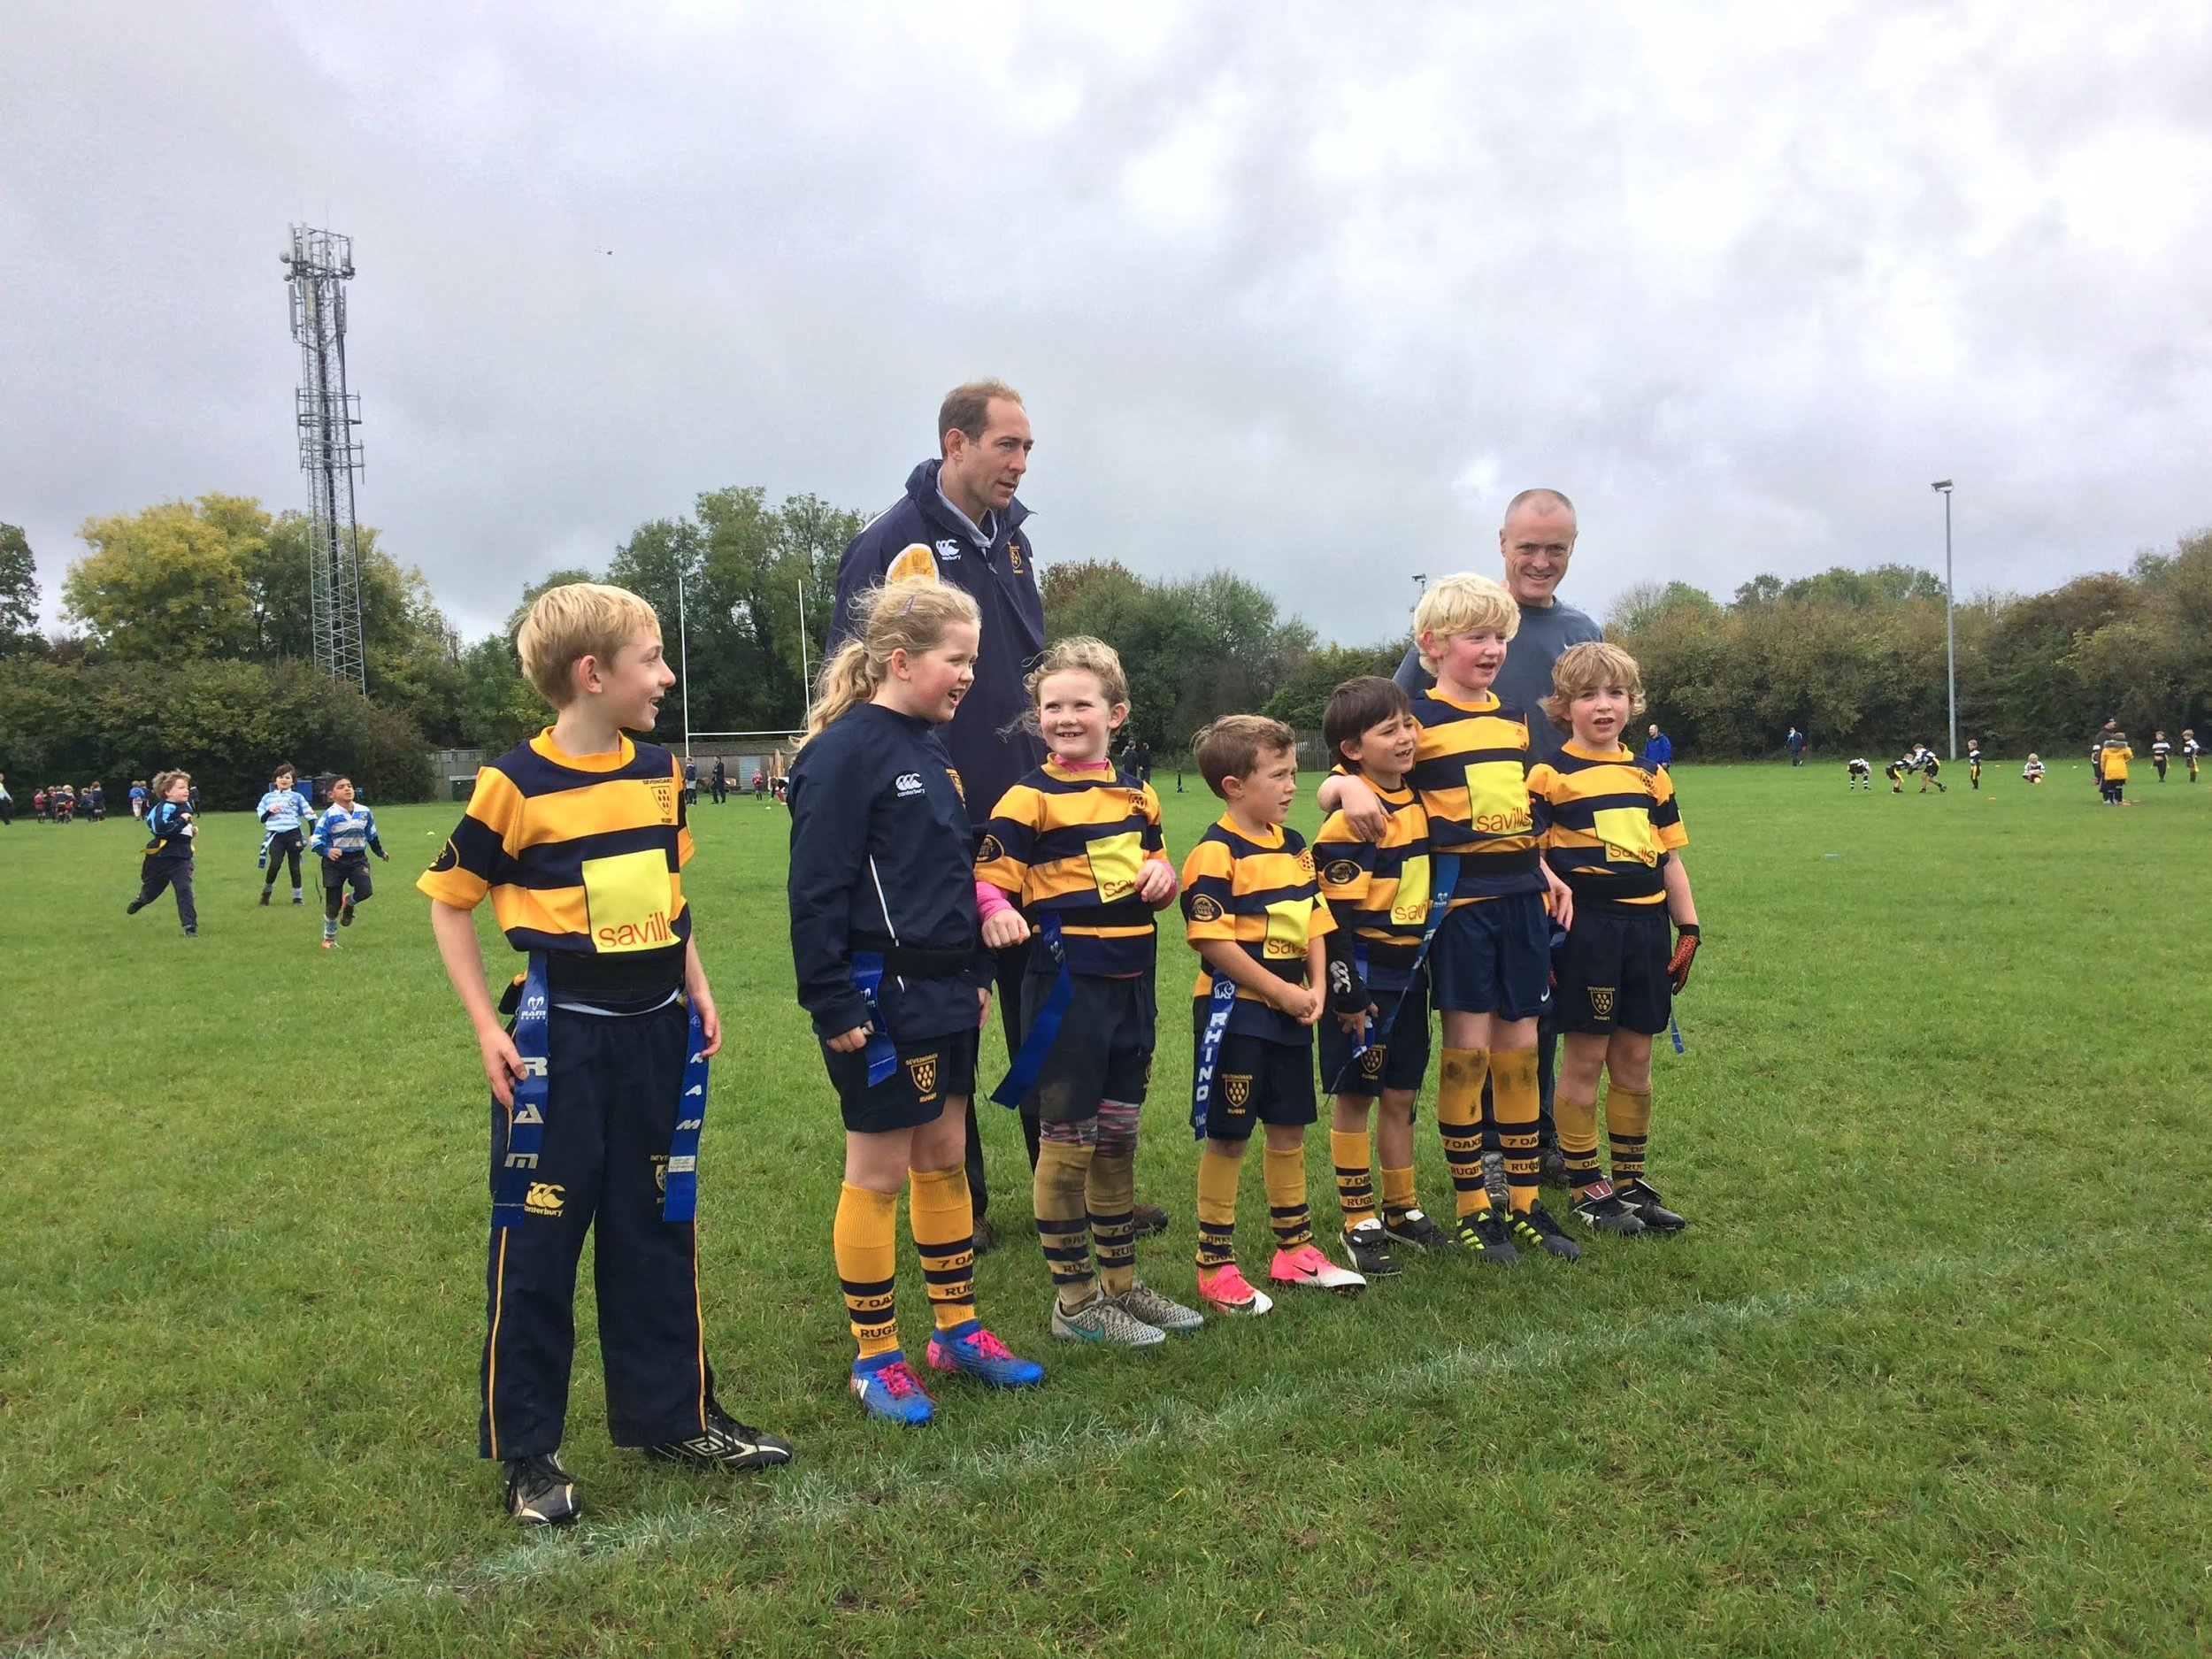 Warlingham Panthers Pic 1.jpg